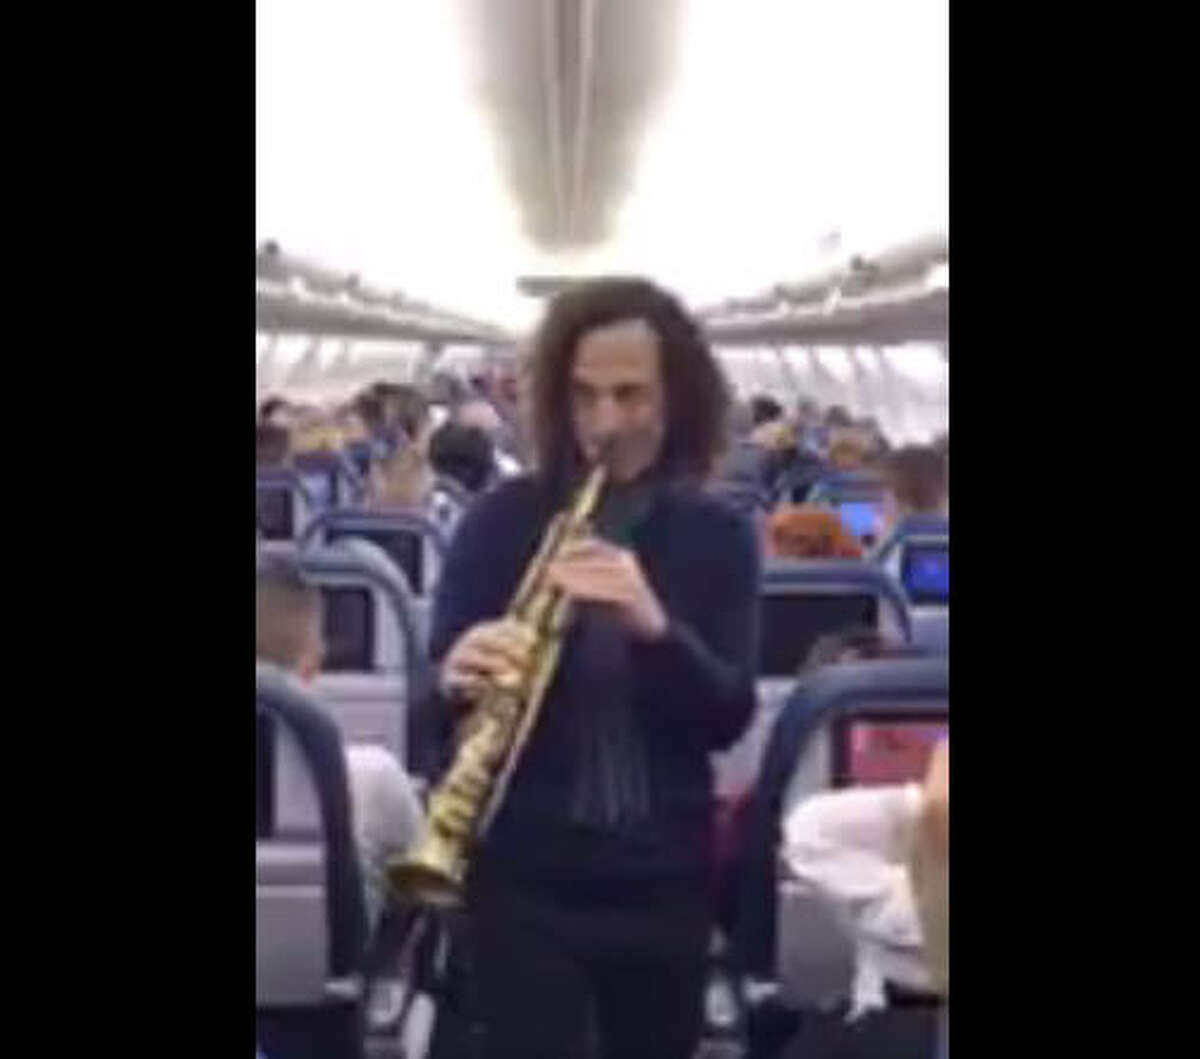 In a spontaneous charity challenge, Saxophonist Kenny G offered to play for passengers on a Tampa-to-Los Angeles Delta Airlines flight on April 22, 2017. The passengers raised $2,000 for Relay for Life, so Kenny G wandered the aisle in an impromptu concert. Depending upon each passenger's attitude toward his music, this was either a high moment or sheer torture at 30,000 feet.